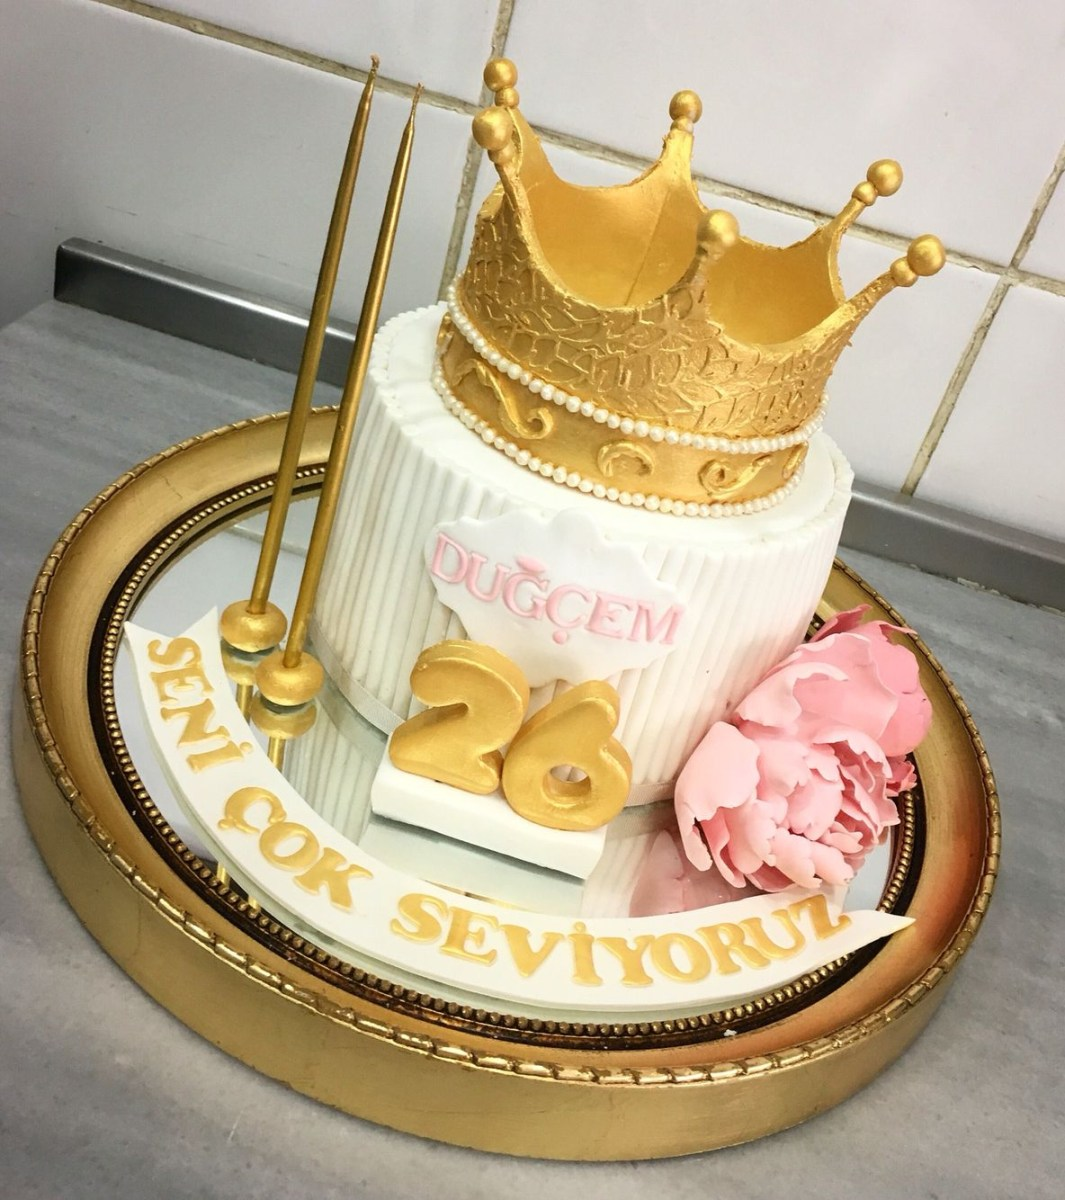 Astounding Pictures Of Birthday Cakes For Adults Queen Crown Birthday Cake Funny Birthday Cards Online Alyptdamsfinfo